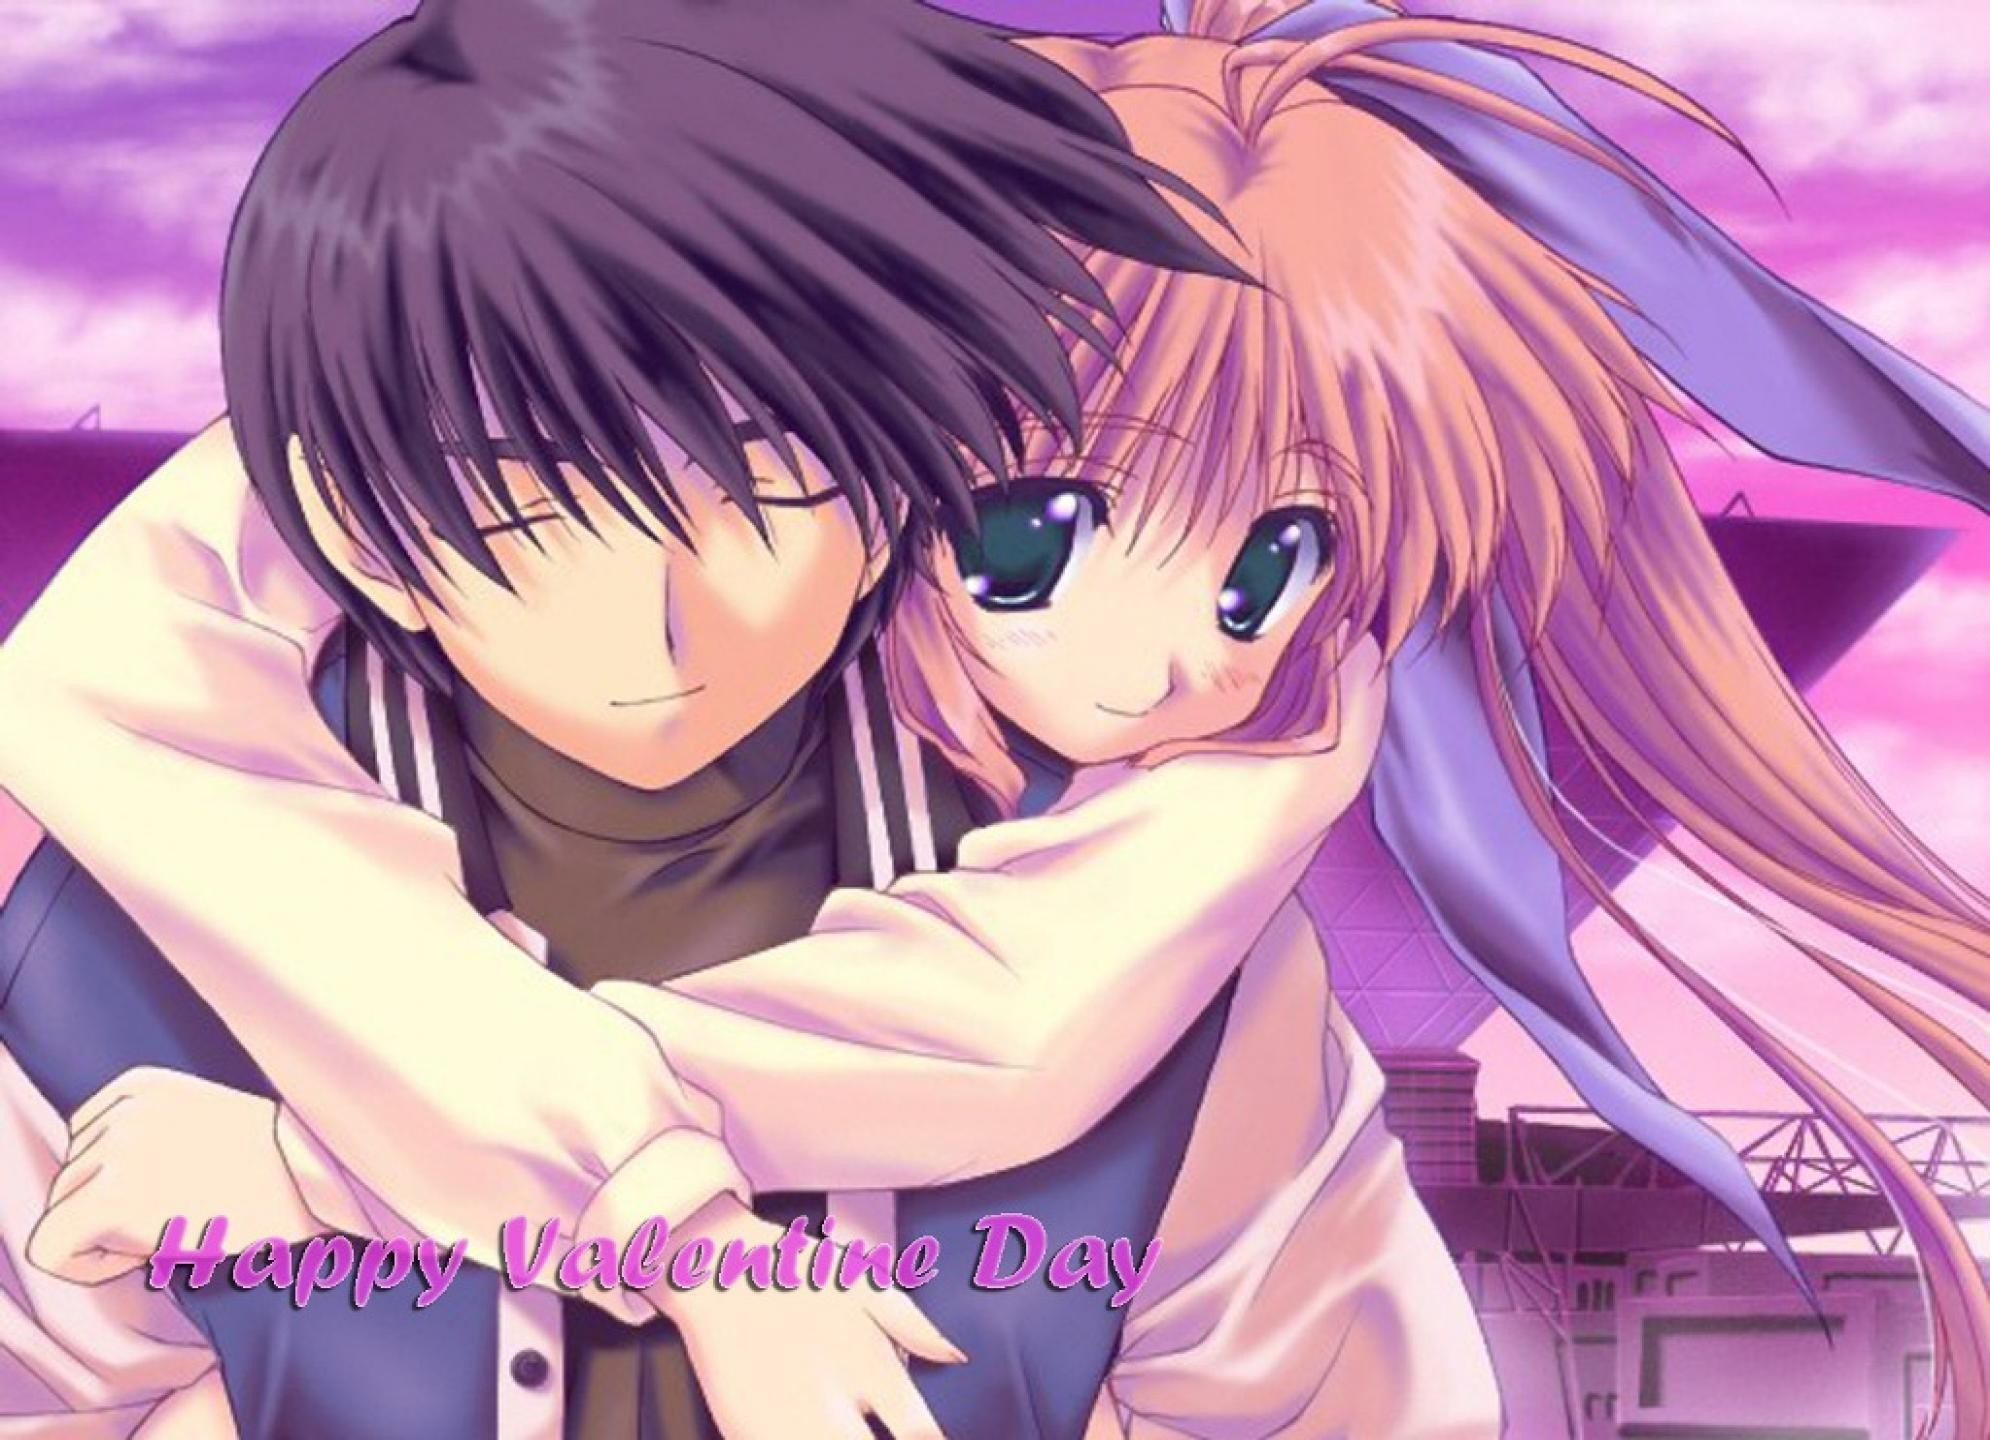 1990x1440 Anime Love Valentines Day HD Wallpaper 7823 4046